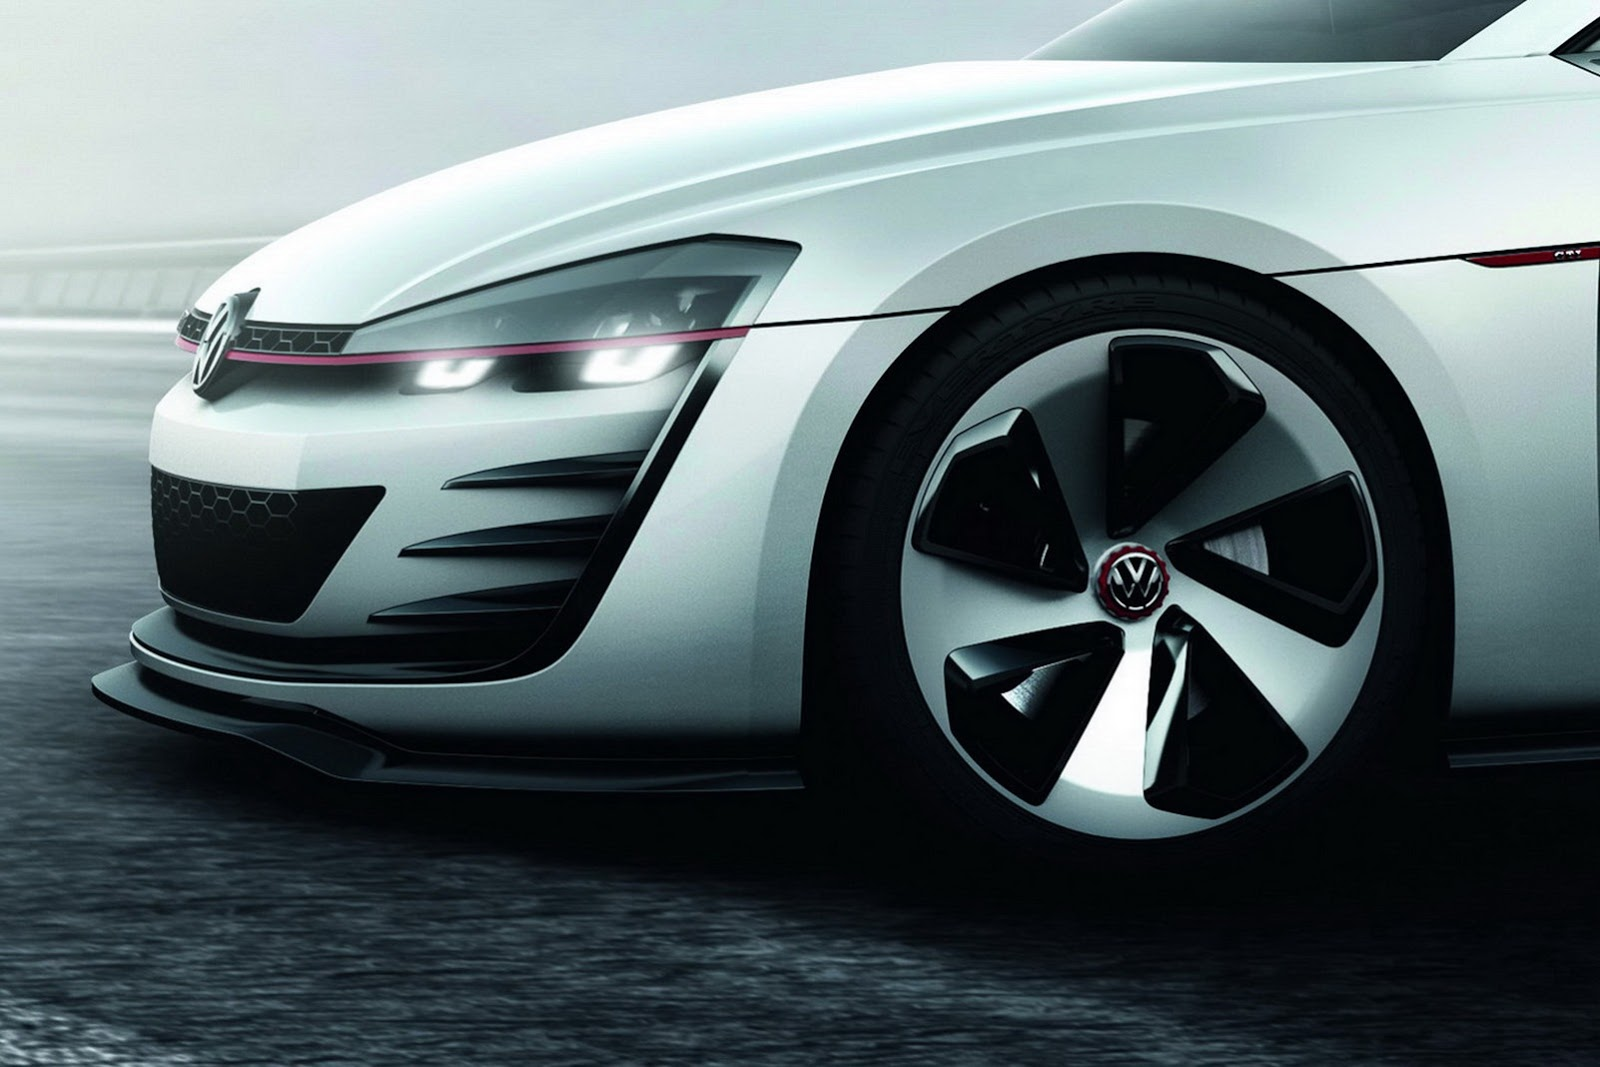 vw-golf-design-vision-gti-52